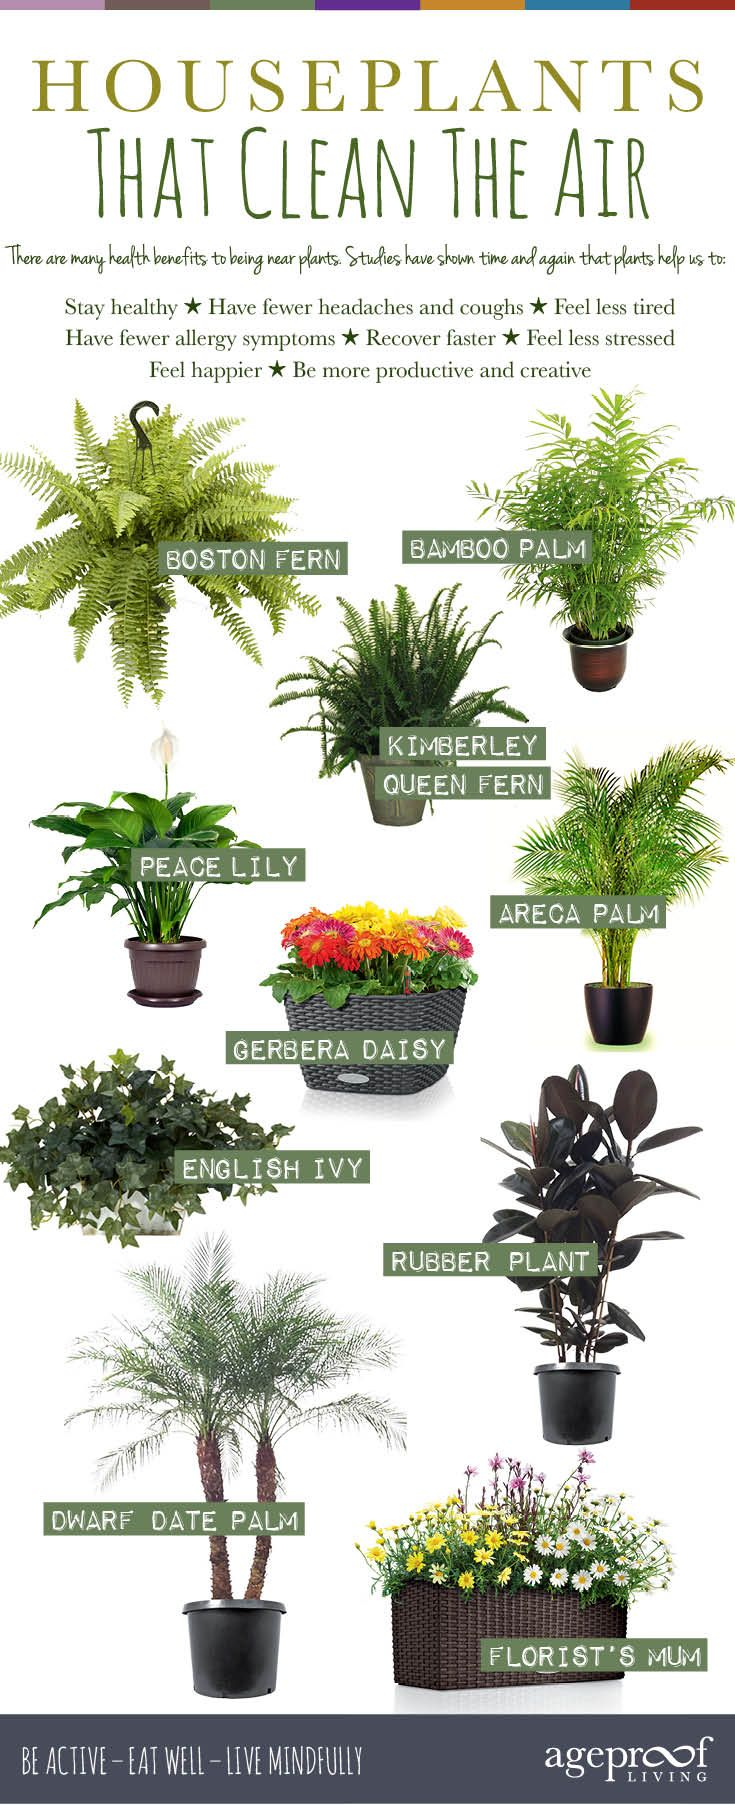 10 Best Houseplants That Clean The Air – We all know that fresh air is vital for our good health, but what if you're stuck